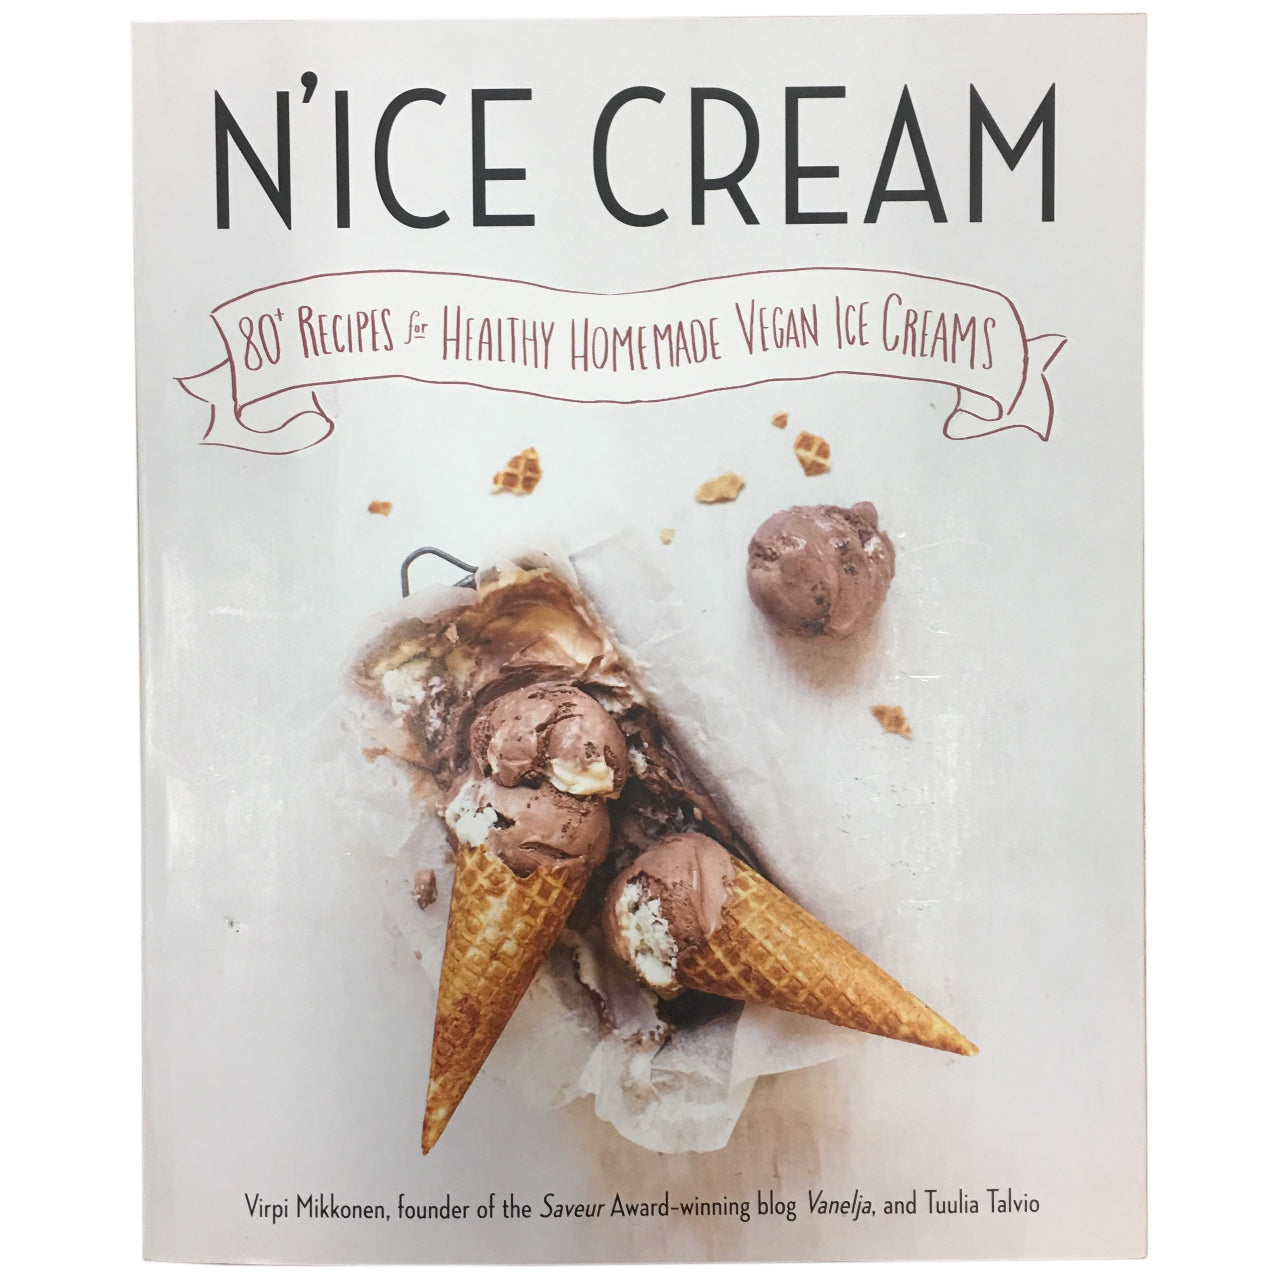 N'ice Cream: 80+ Recipes